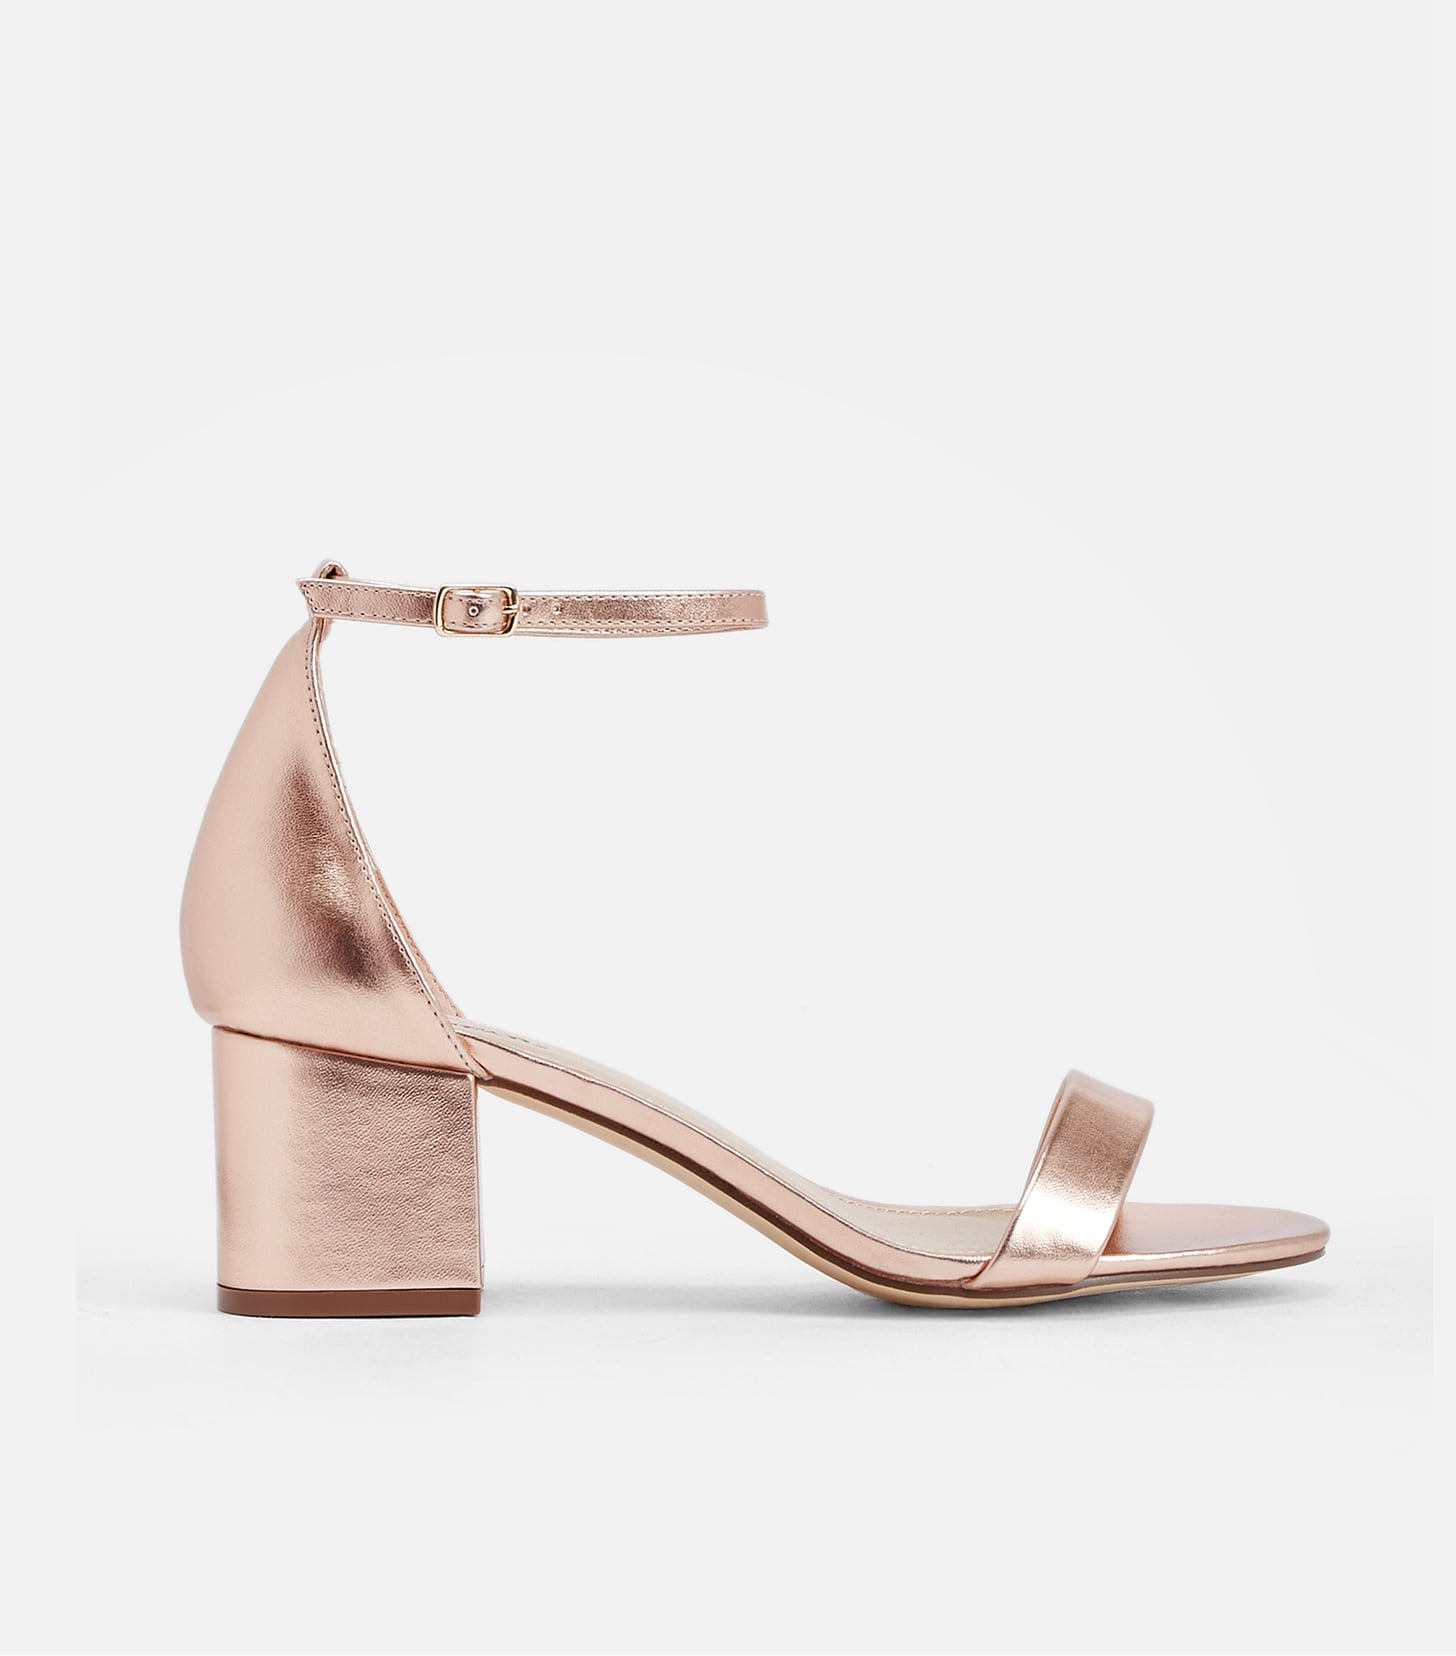 Shop Block Heels - Morning After Brunchin'